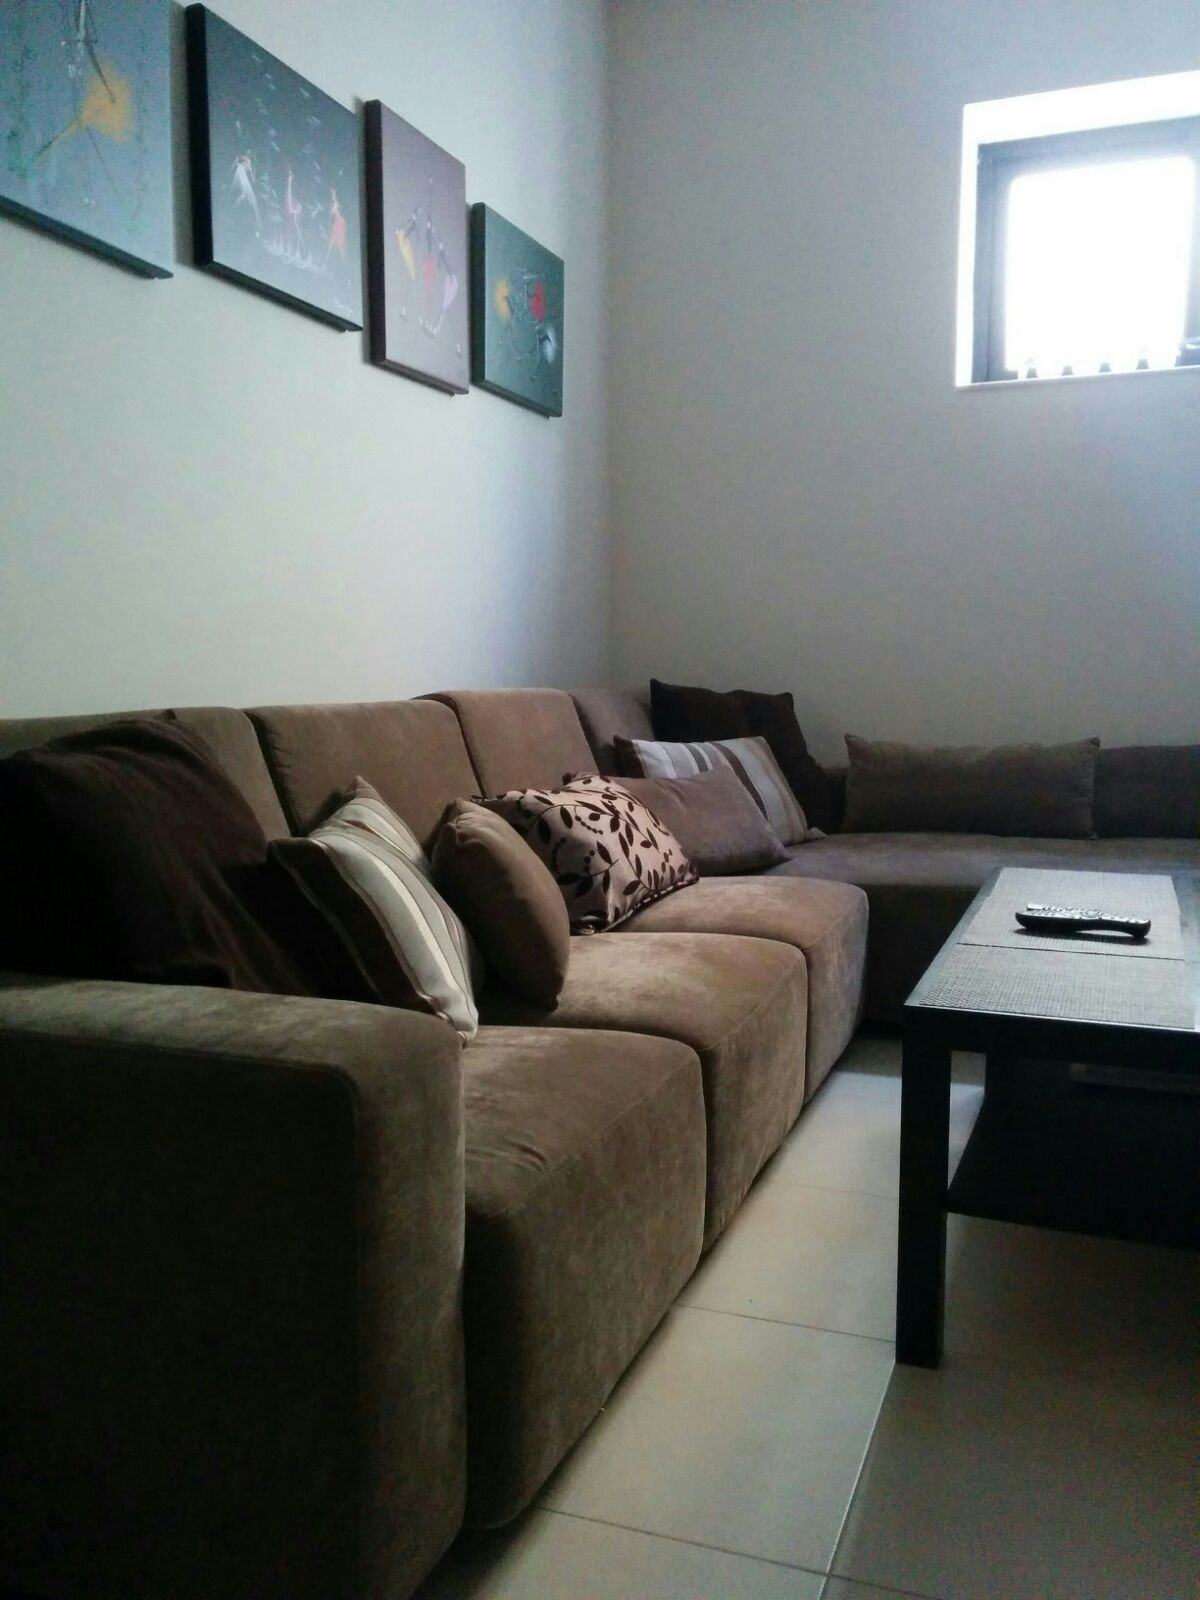 Sofa rent flat in Malta